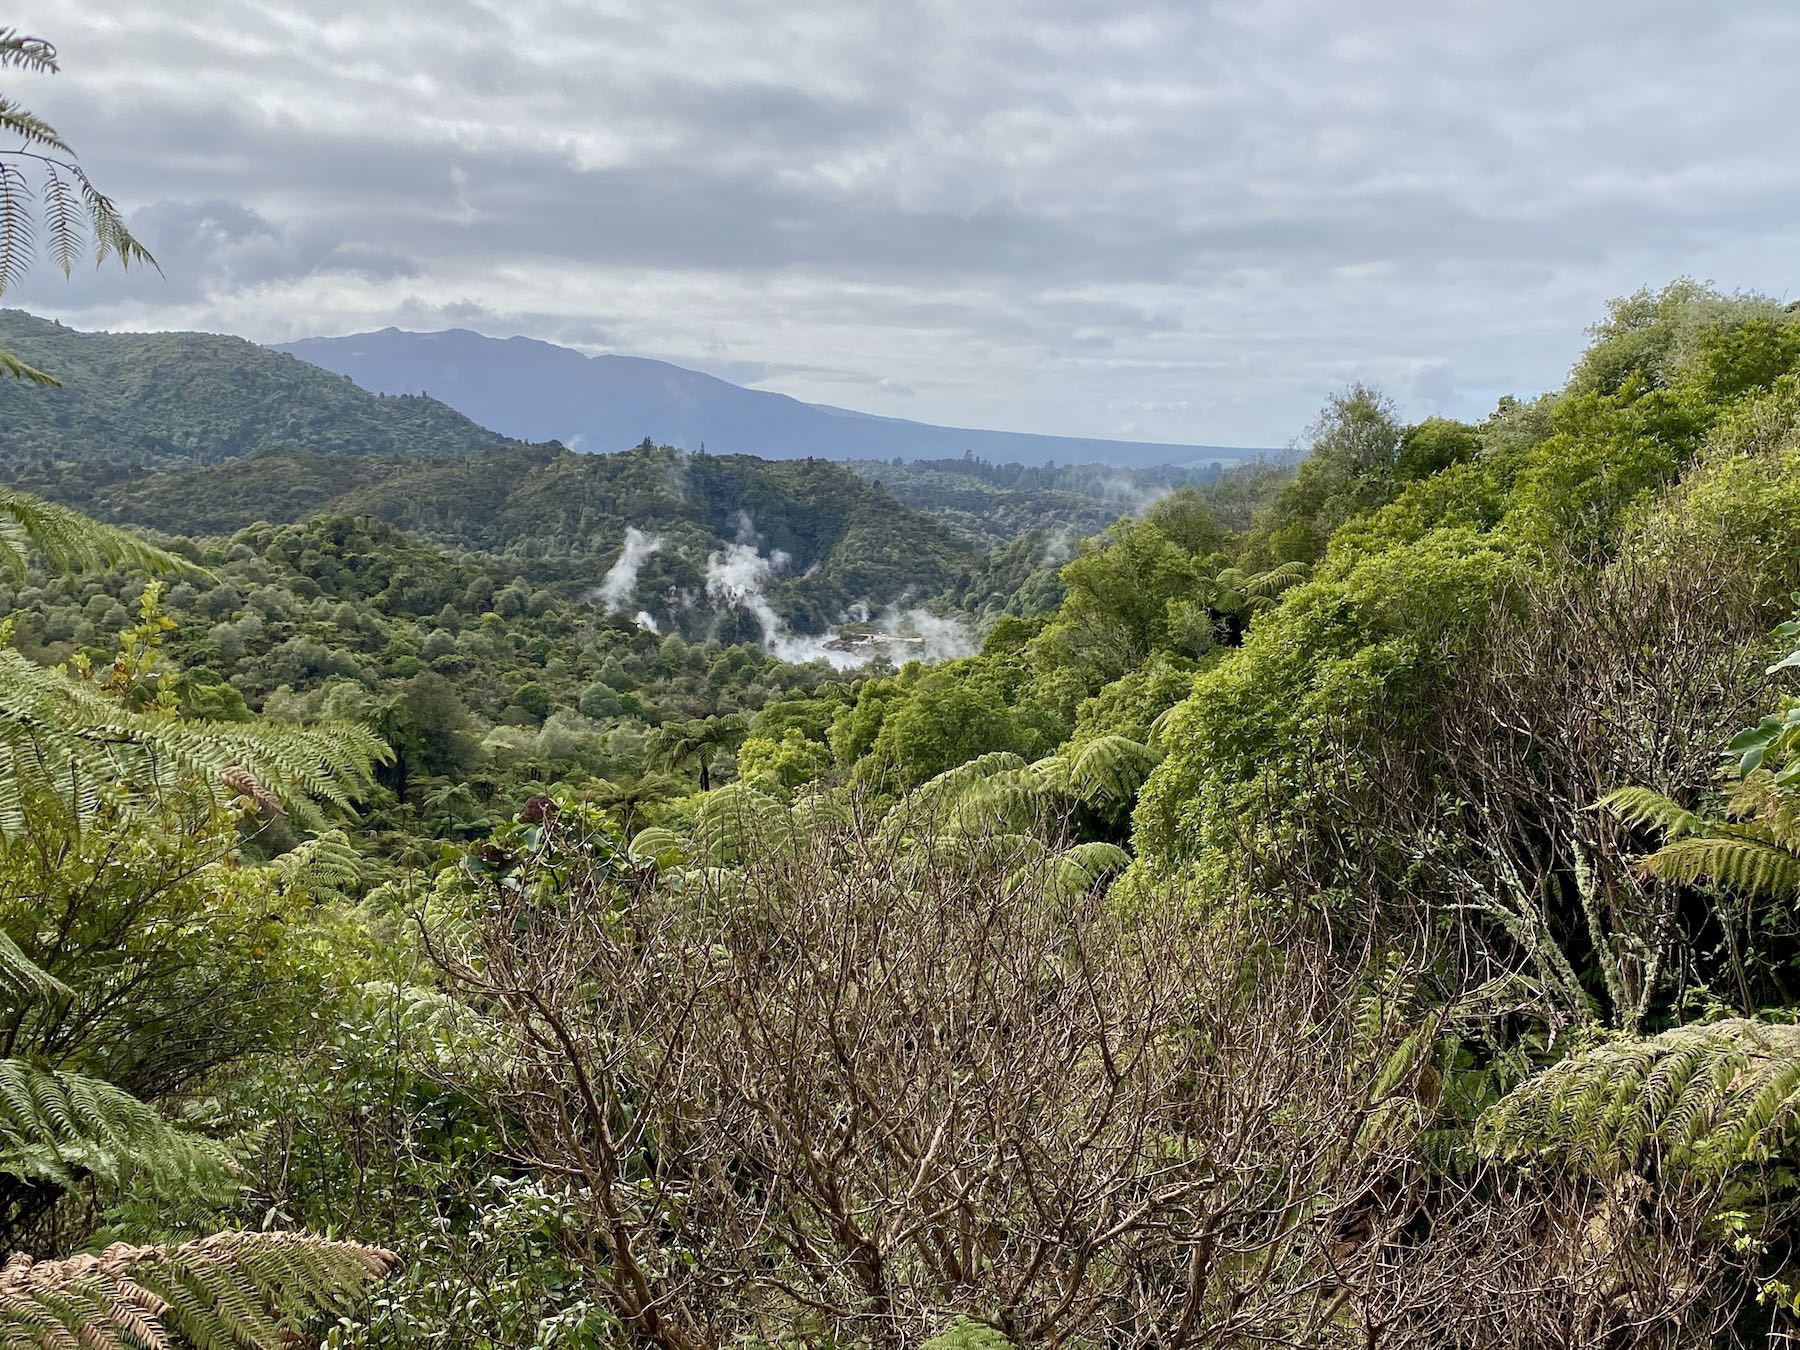 Looking across a bush-clad valley with volcanic steam.